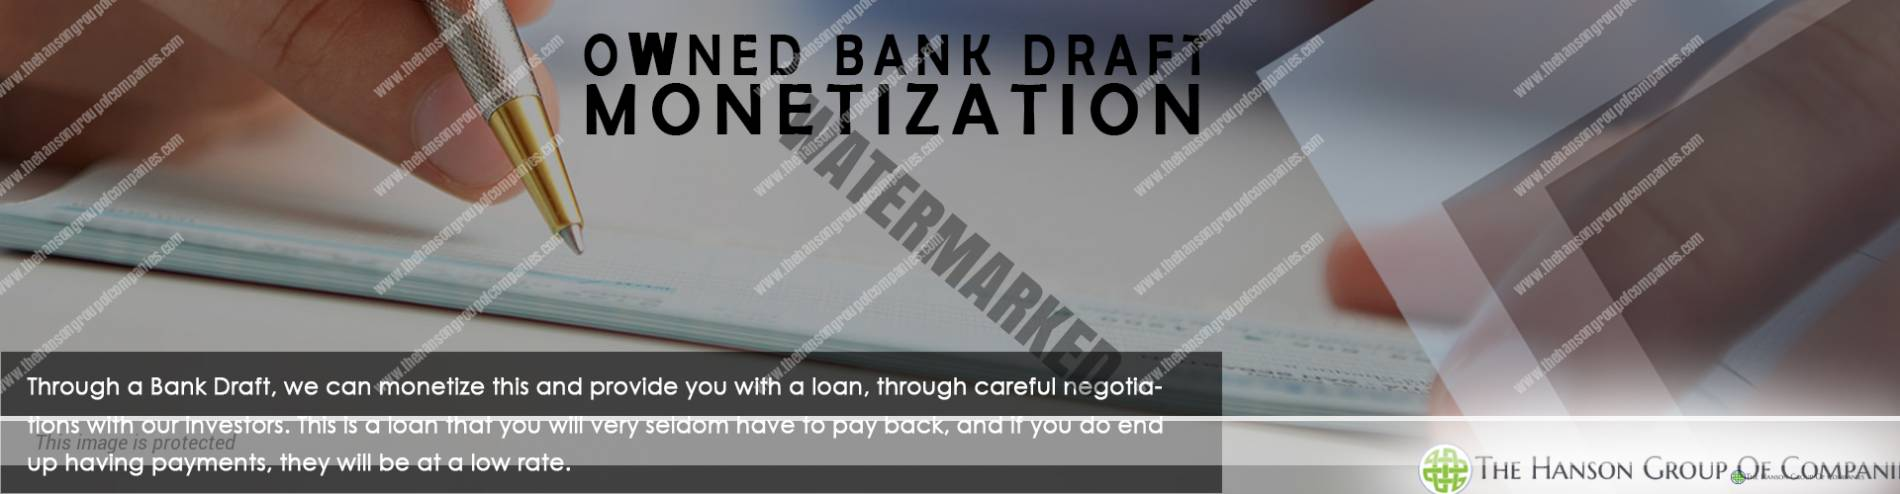 owned-bank-guarantee-bg-monetization